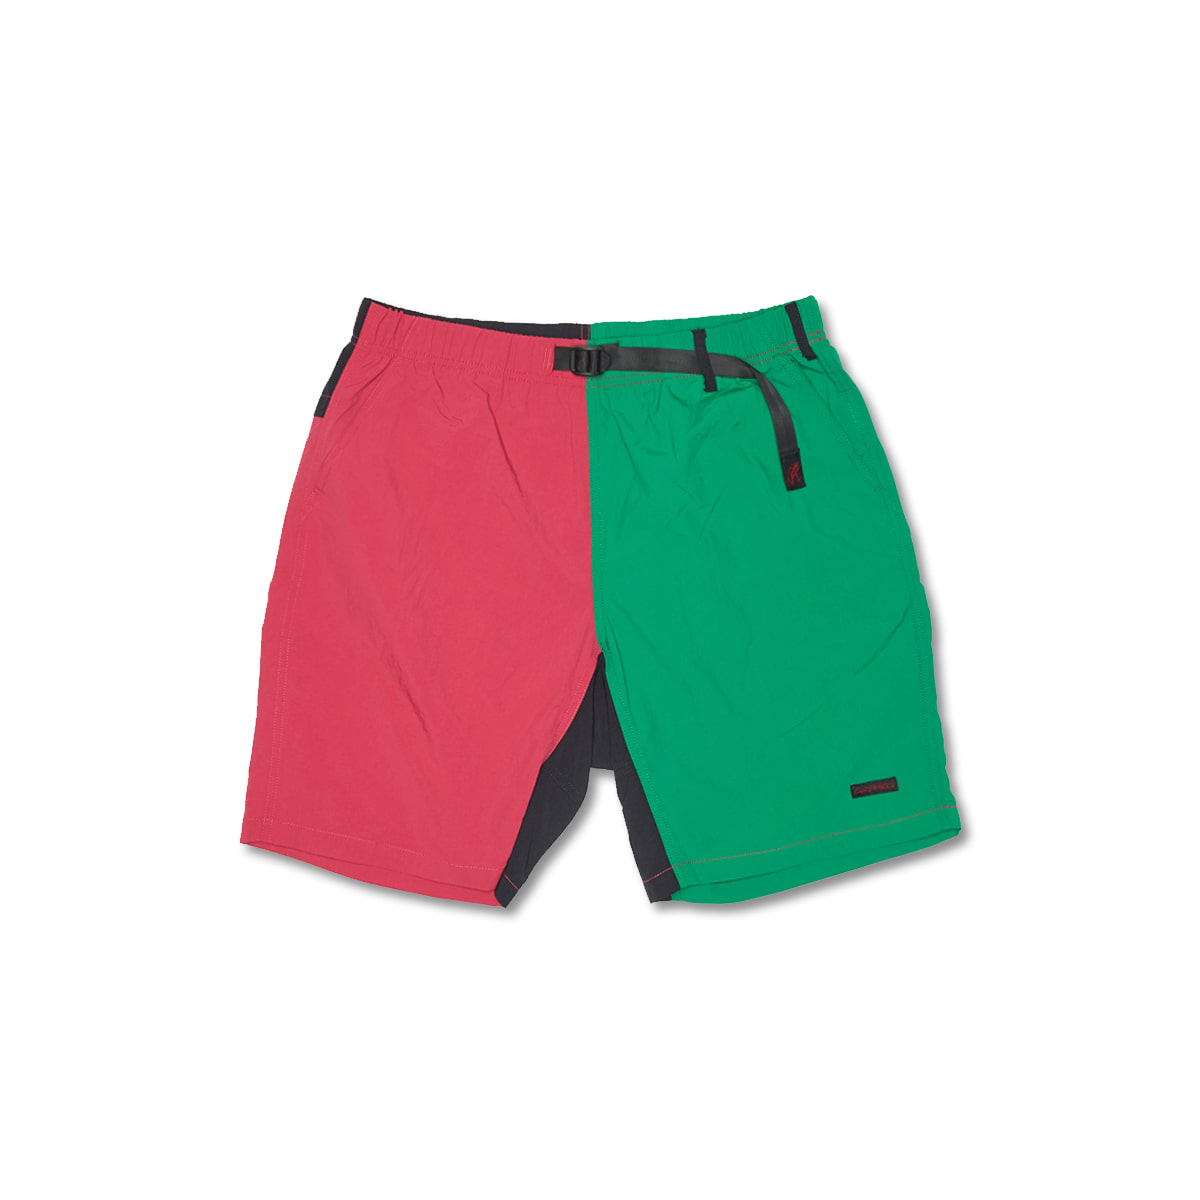 [GRAMICCI] SHELL PACKABLE SHORTS 'RASPBERRY X KELLY'